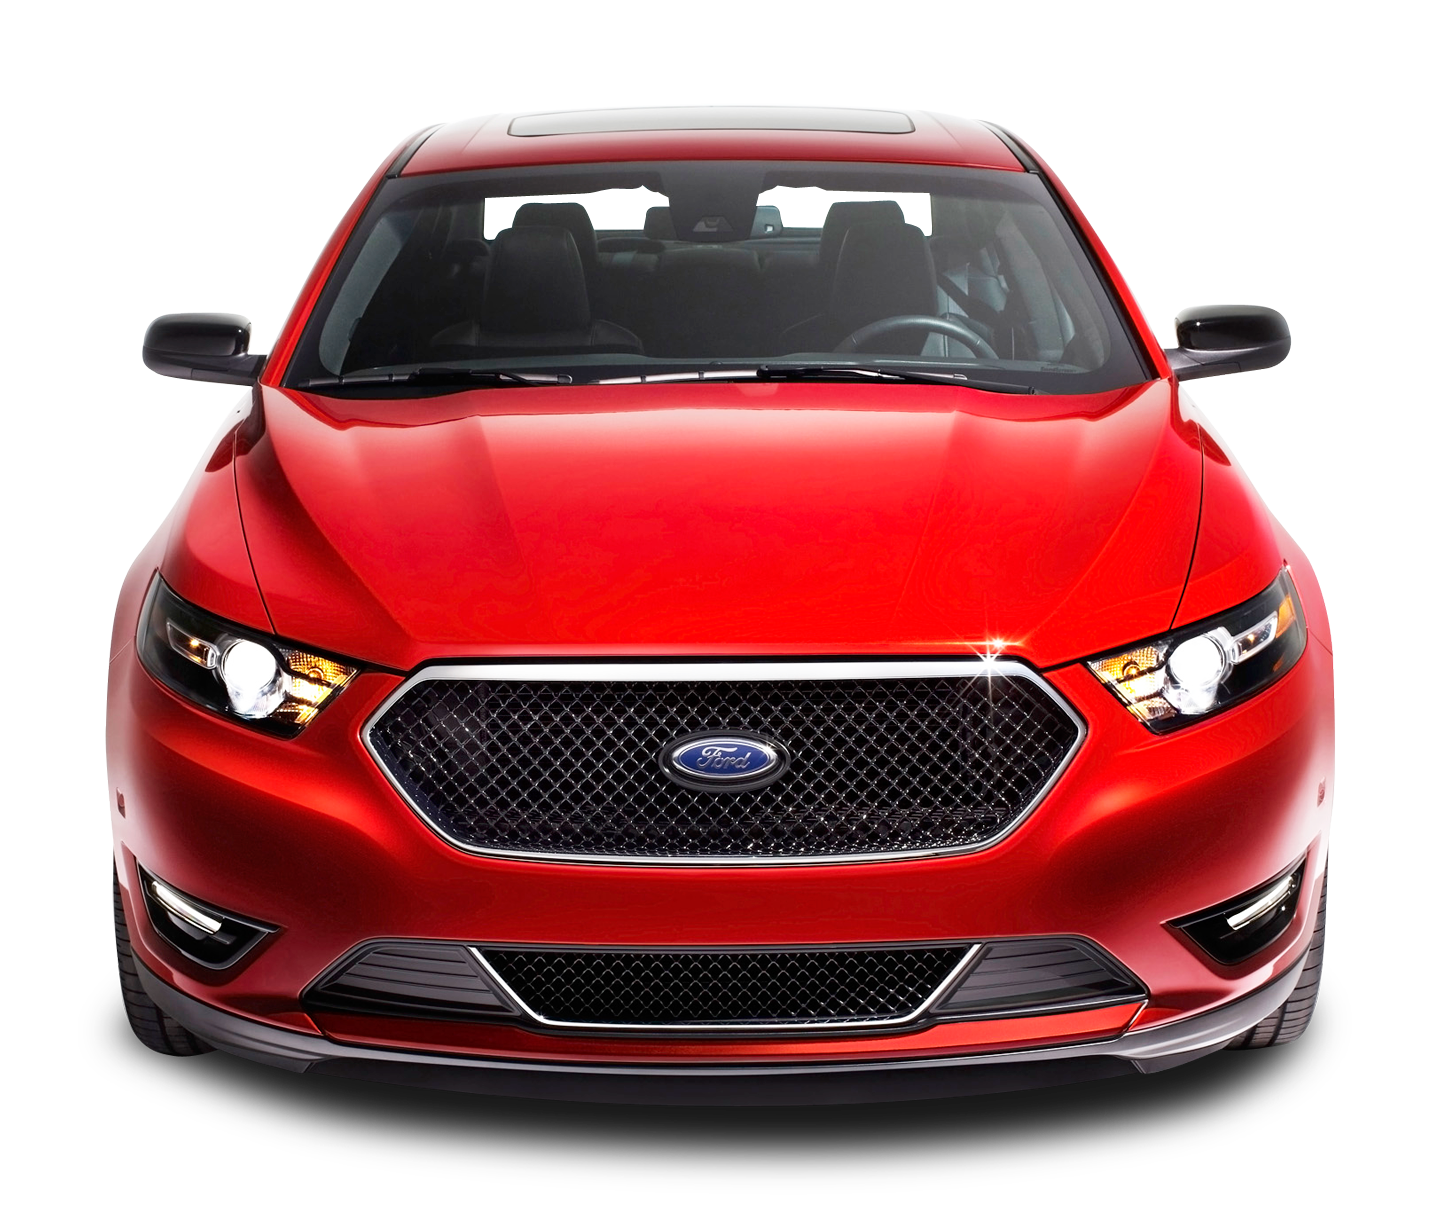 Red Ford Taurus Front Car Png Image Autos Png De Frente